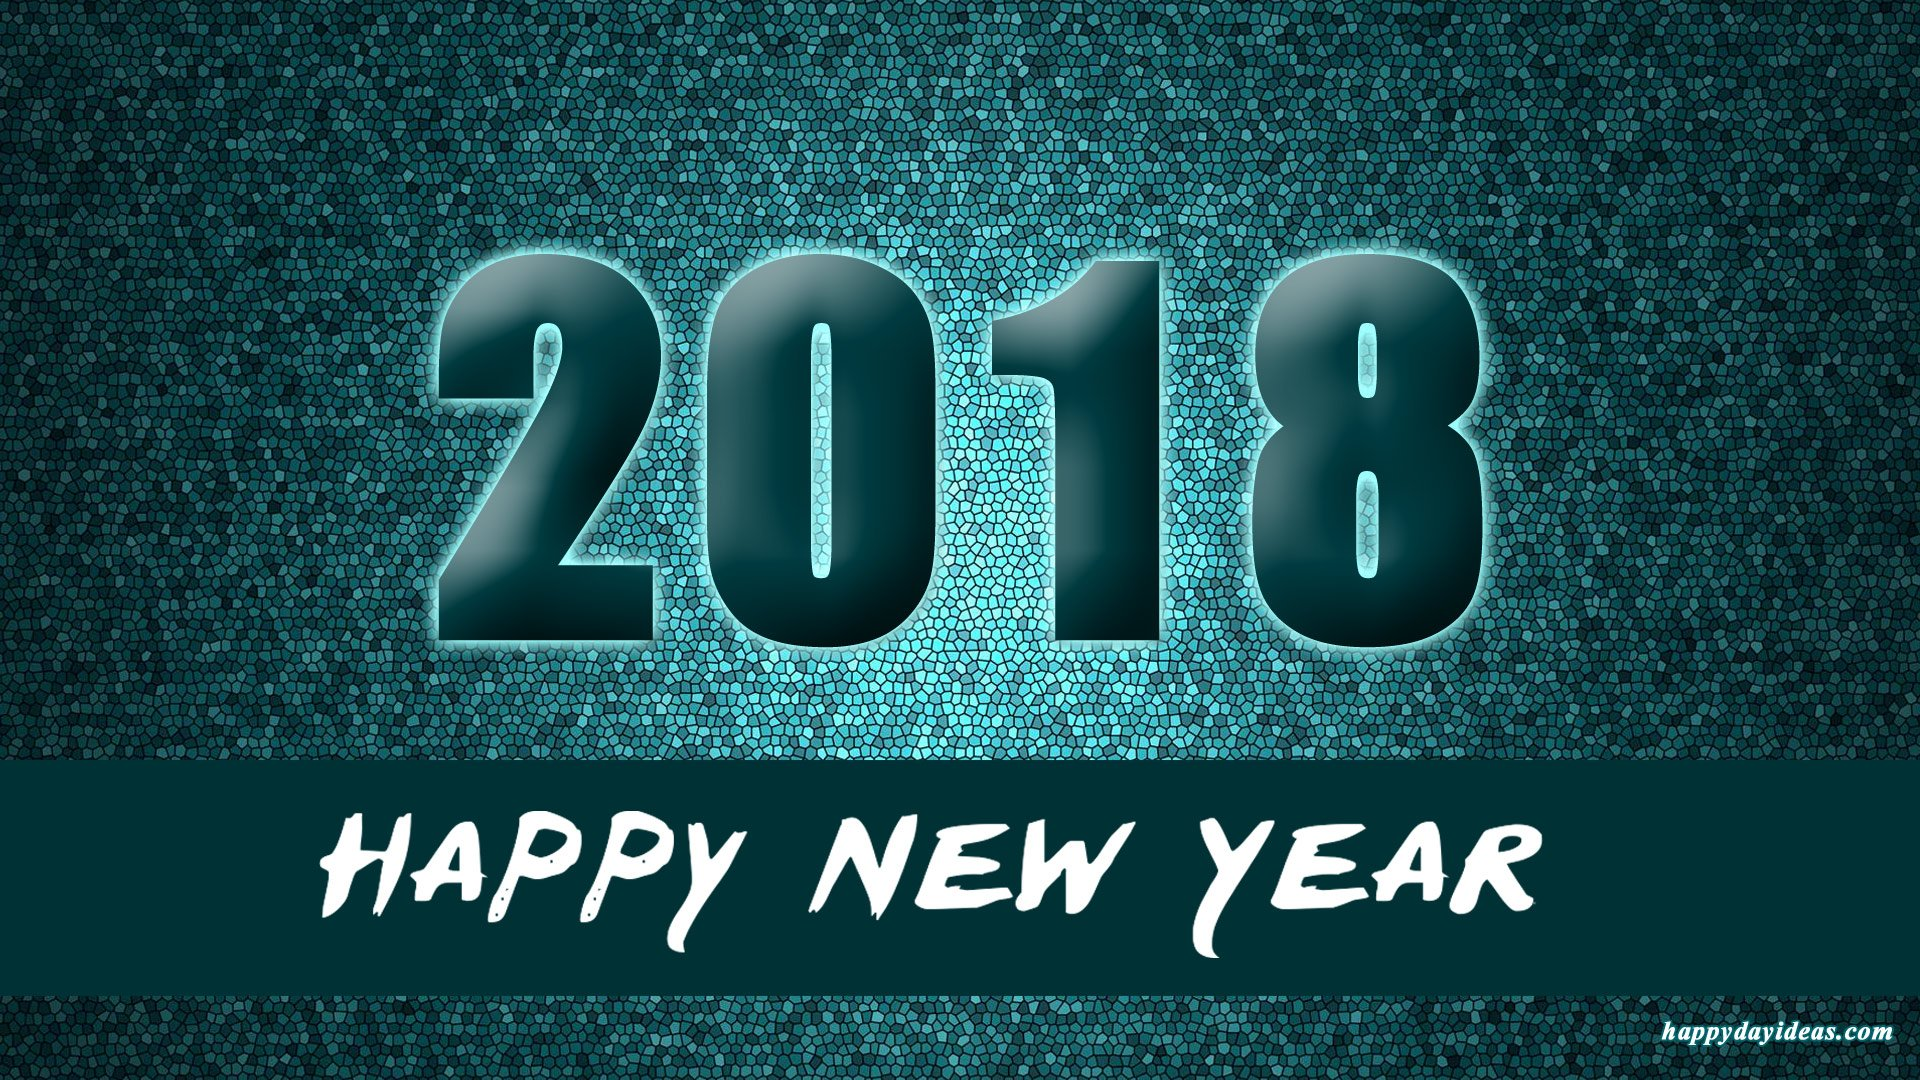 happy new year 2018 wallpaper download in hd 1920x1080